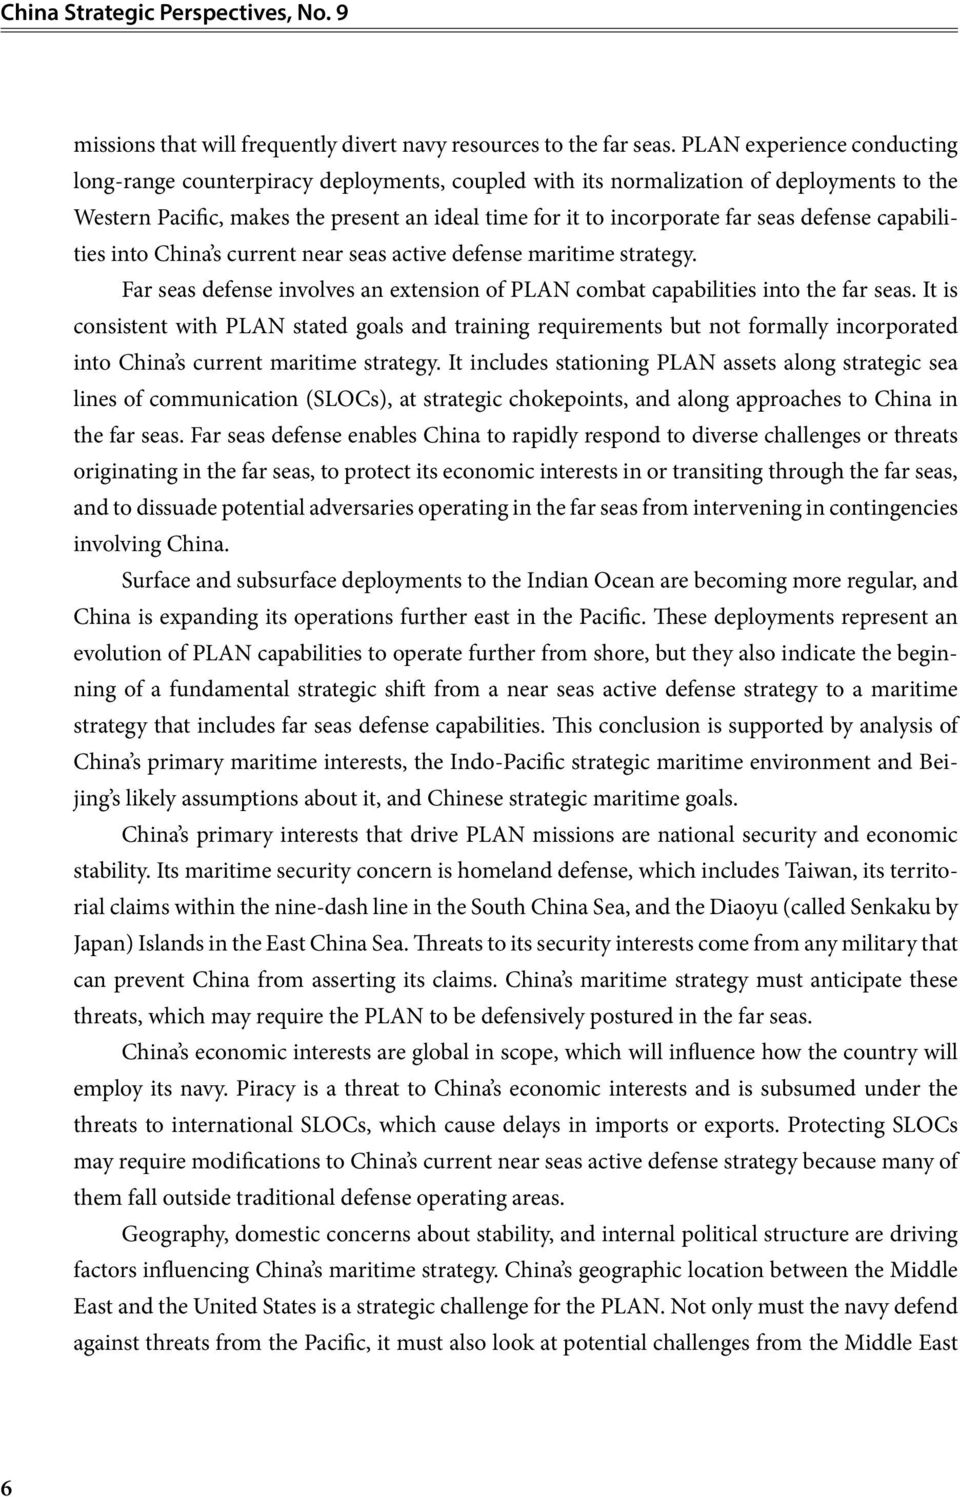 defense capabilities into China s current near seas active defense maritime strategy. Far seas defense involves an extension of PLAN combat capabilities into the far seas.